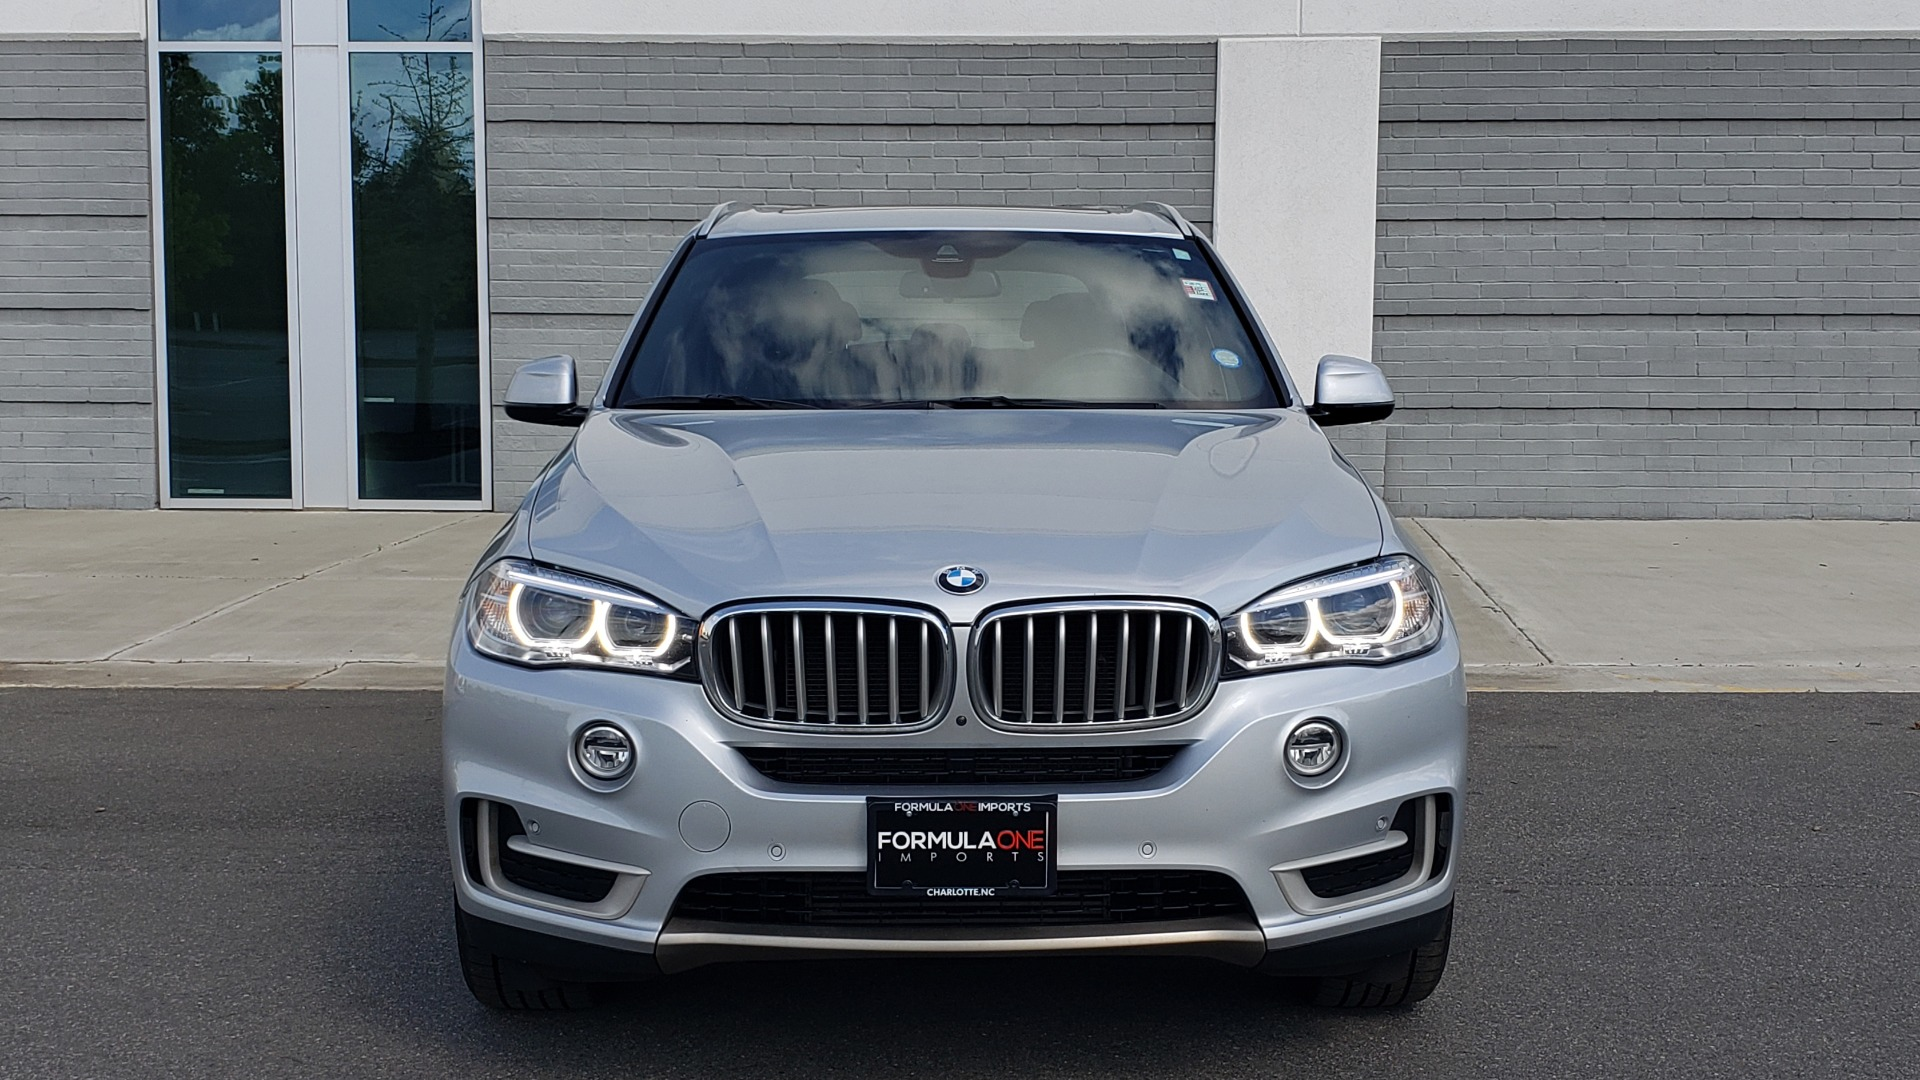 Used 2018 BMW X5 XDRIVE35I PREMIUM / NAV / PANO-ROOF / DRIVER ASST / REARVIEW for sale Sold at Formula Imports in Charlotte NC 28227 24